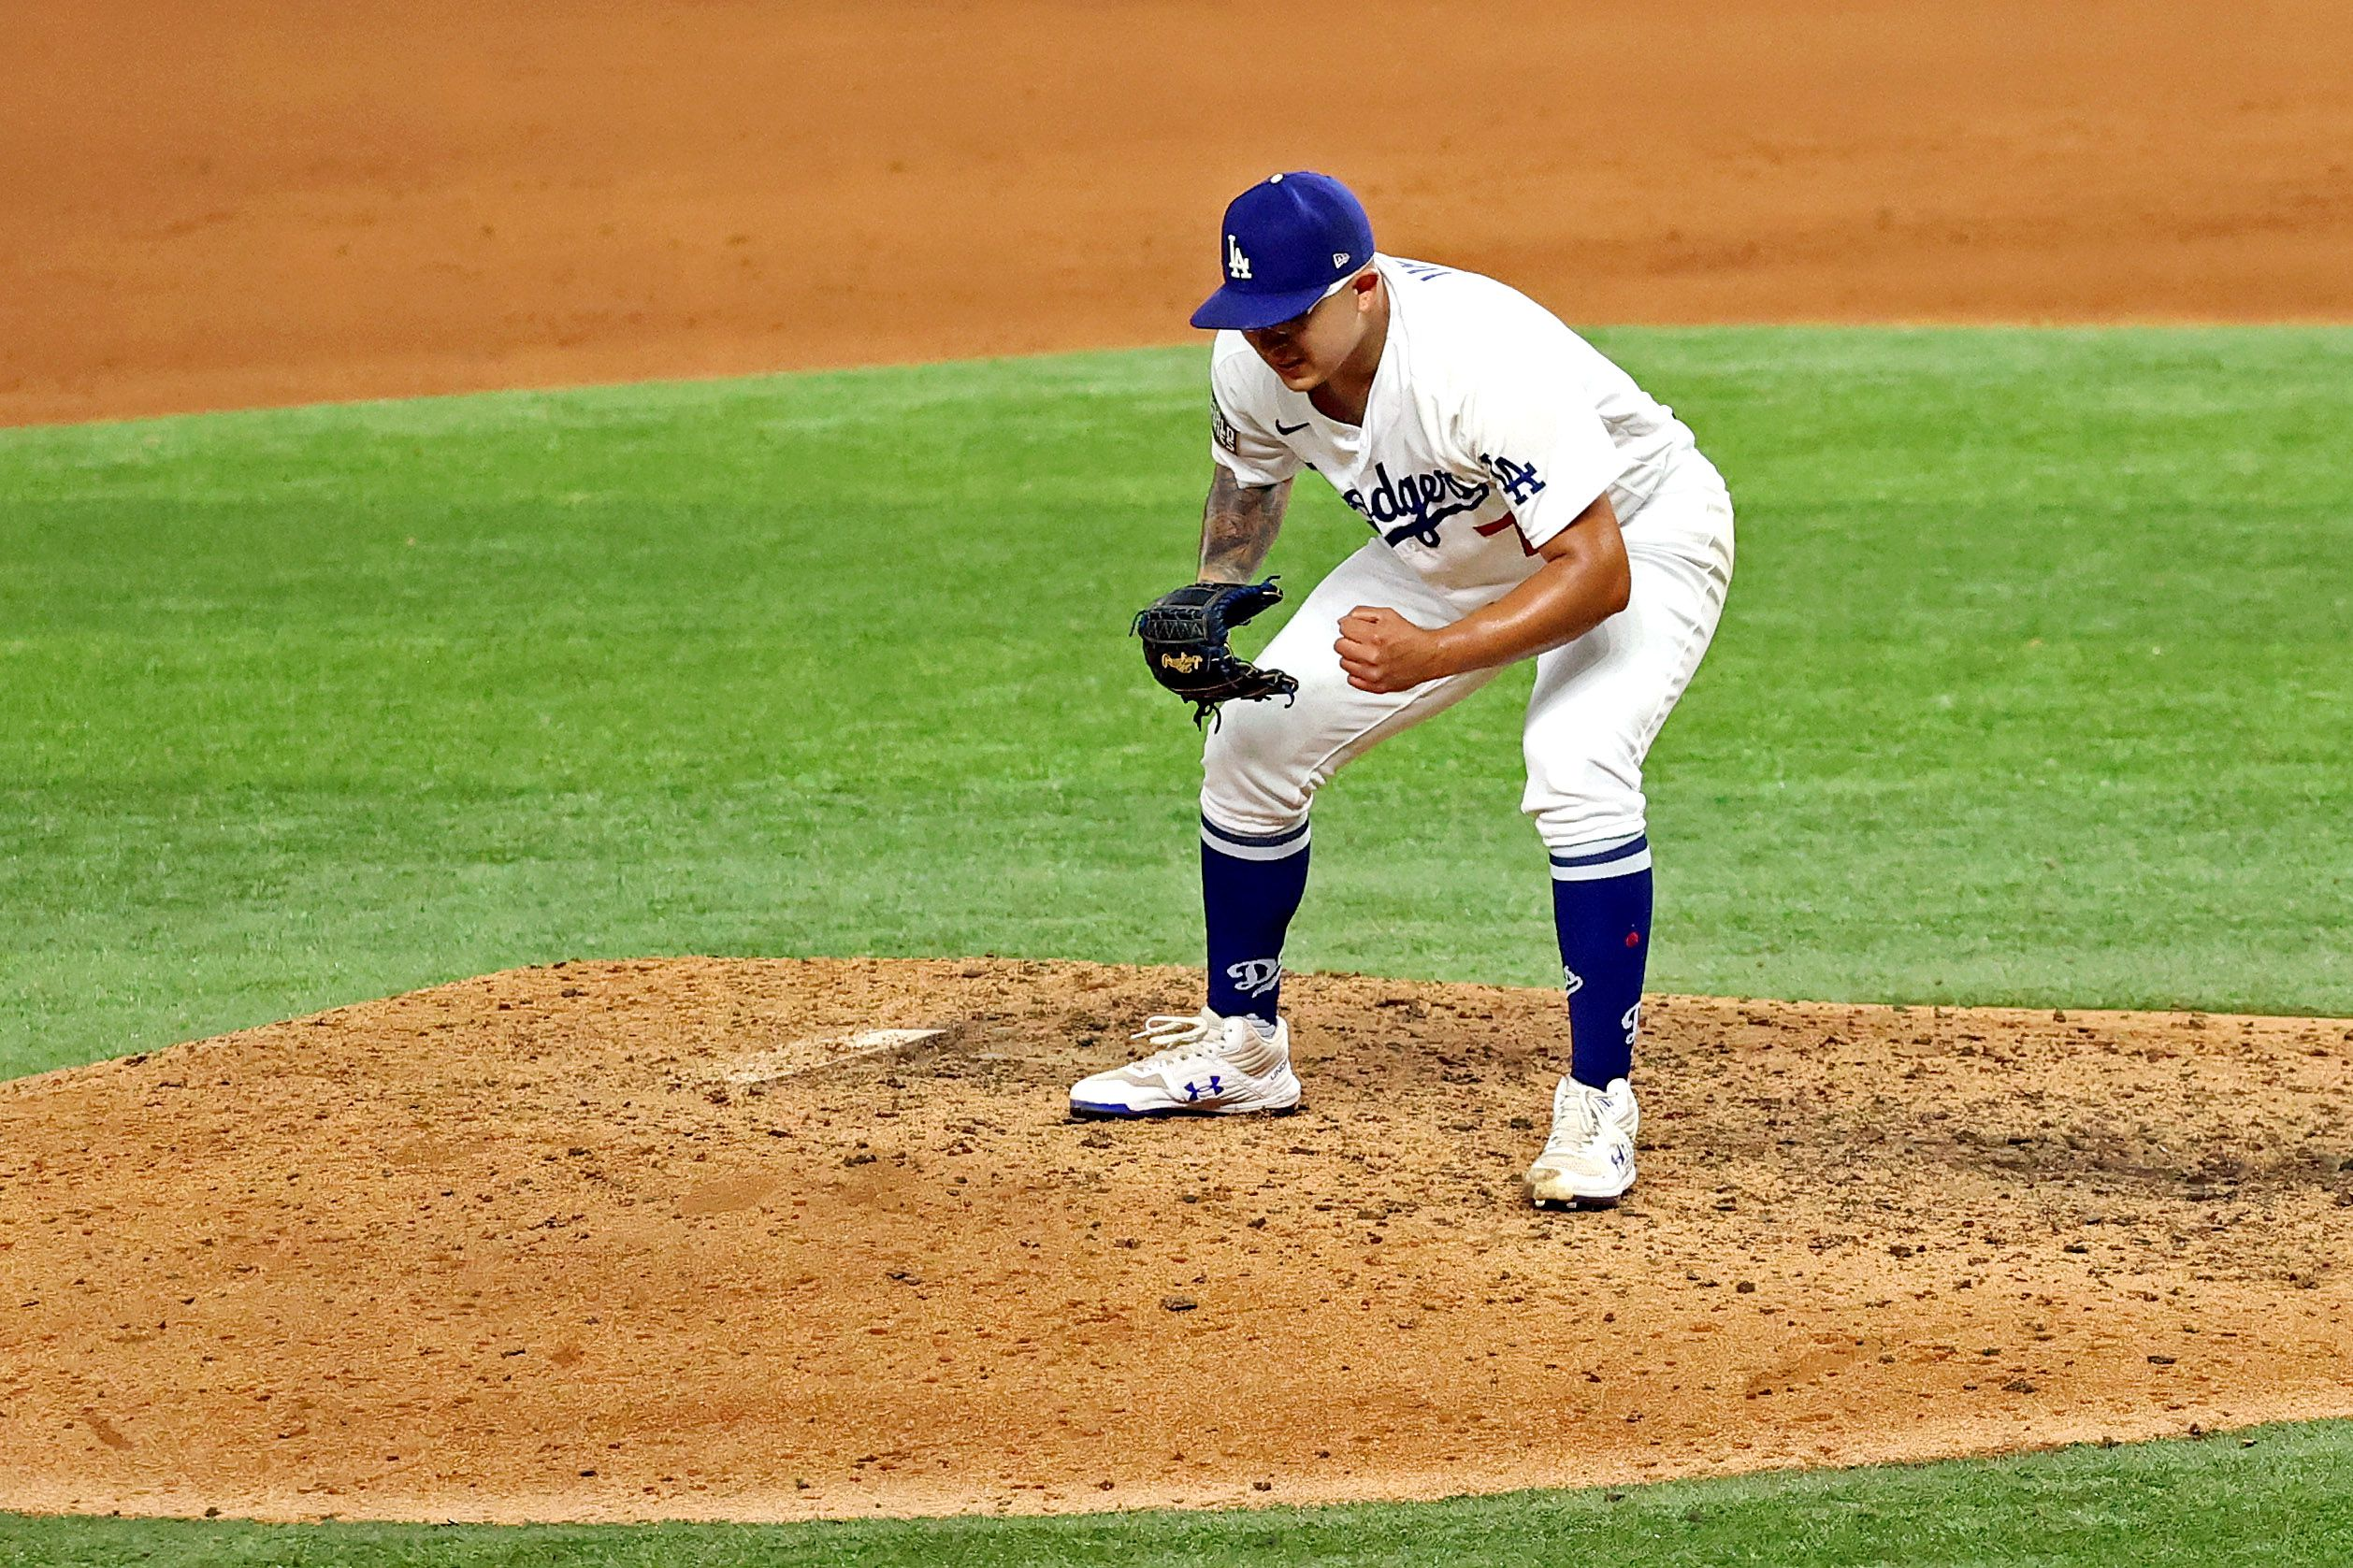 Oct 27, 2020; Arlington, Texas, USA; Los Angeles Dodgers starting pitcher Julio Urias (7) celebrates after recording the last out with a strike out against the Tampa Bay Rays to win the World Series in game six of the 2020 World Series at Globe Life Field. Mandatory Credit: Kevin Jairaj-USA TODAY Sports